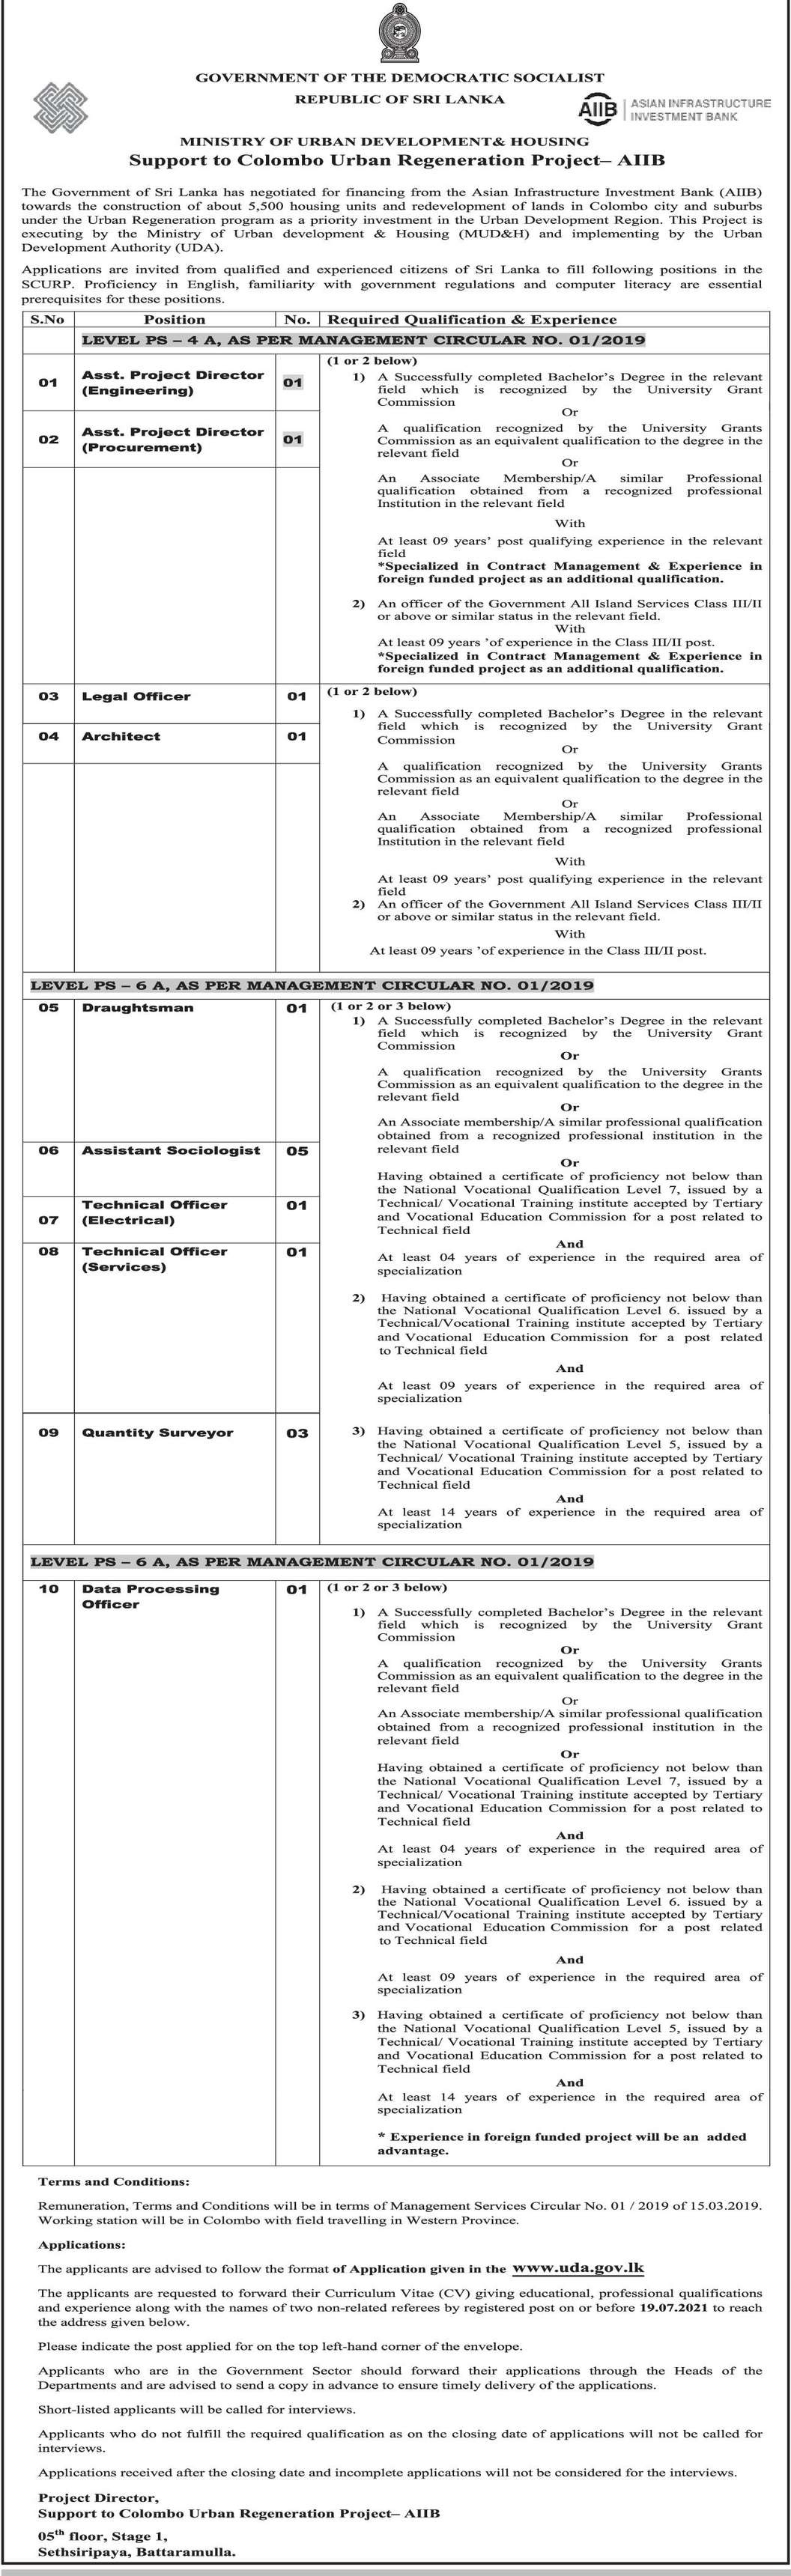 Assistant Project Director, Legal Officer, Architect, Draughtsman, Assistant Sociologist, Technical Officer, Quantity Surveyor, Data Processing Officer